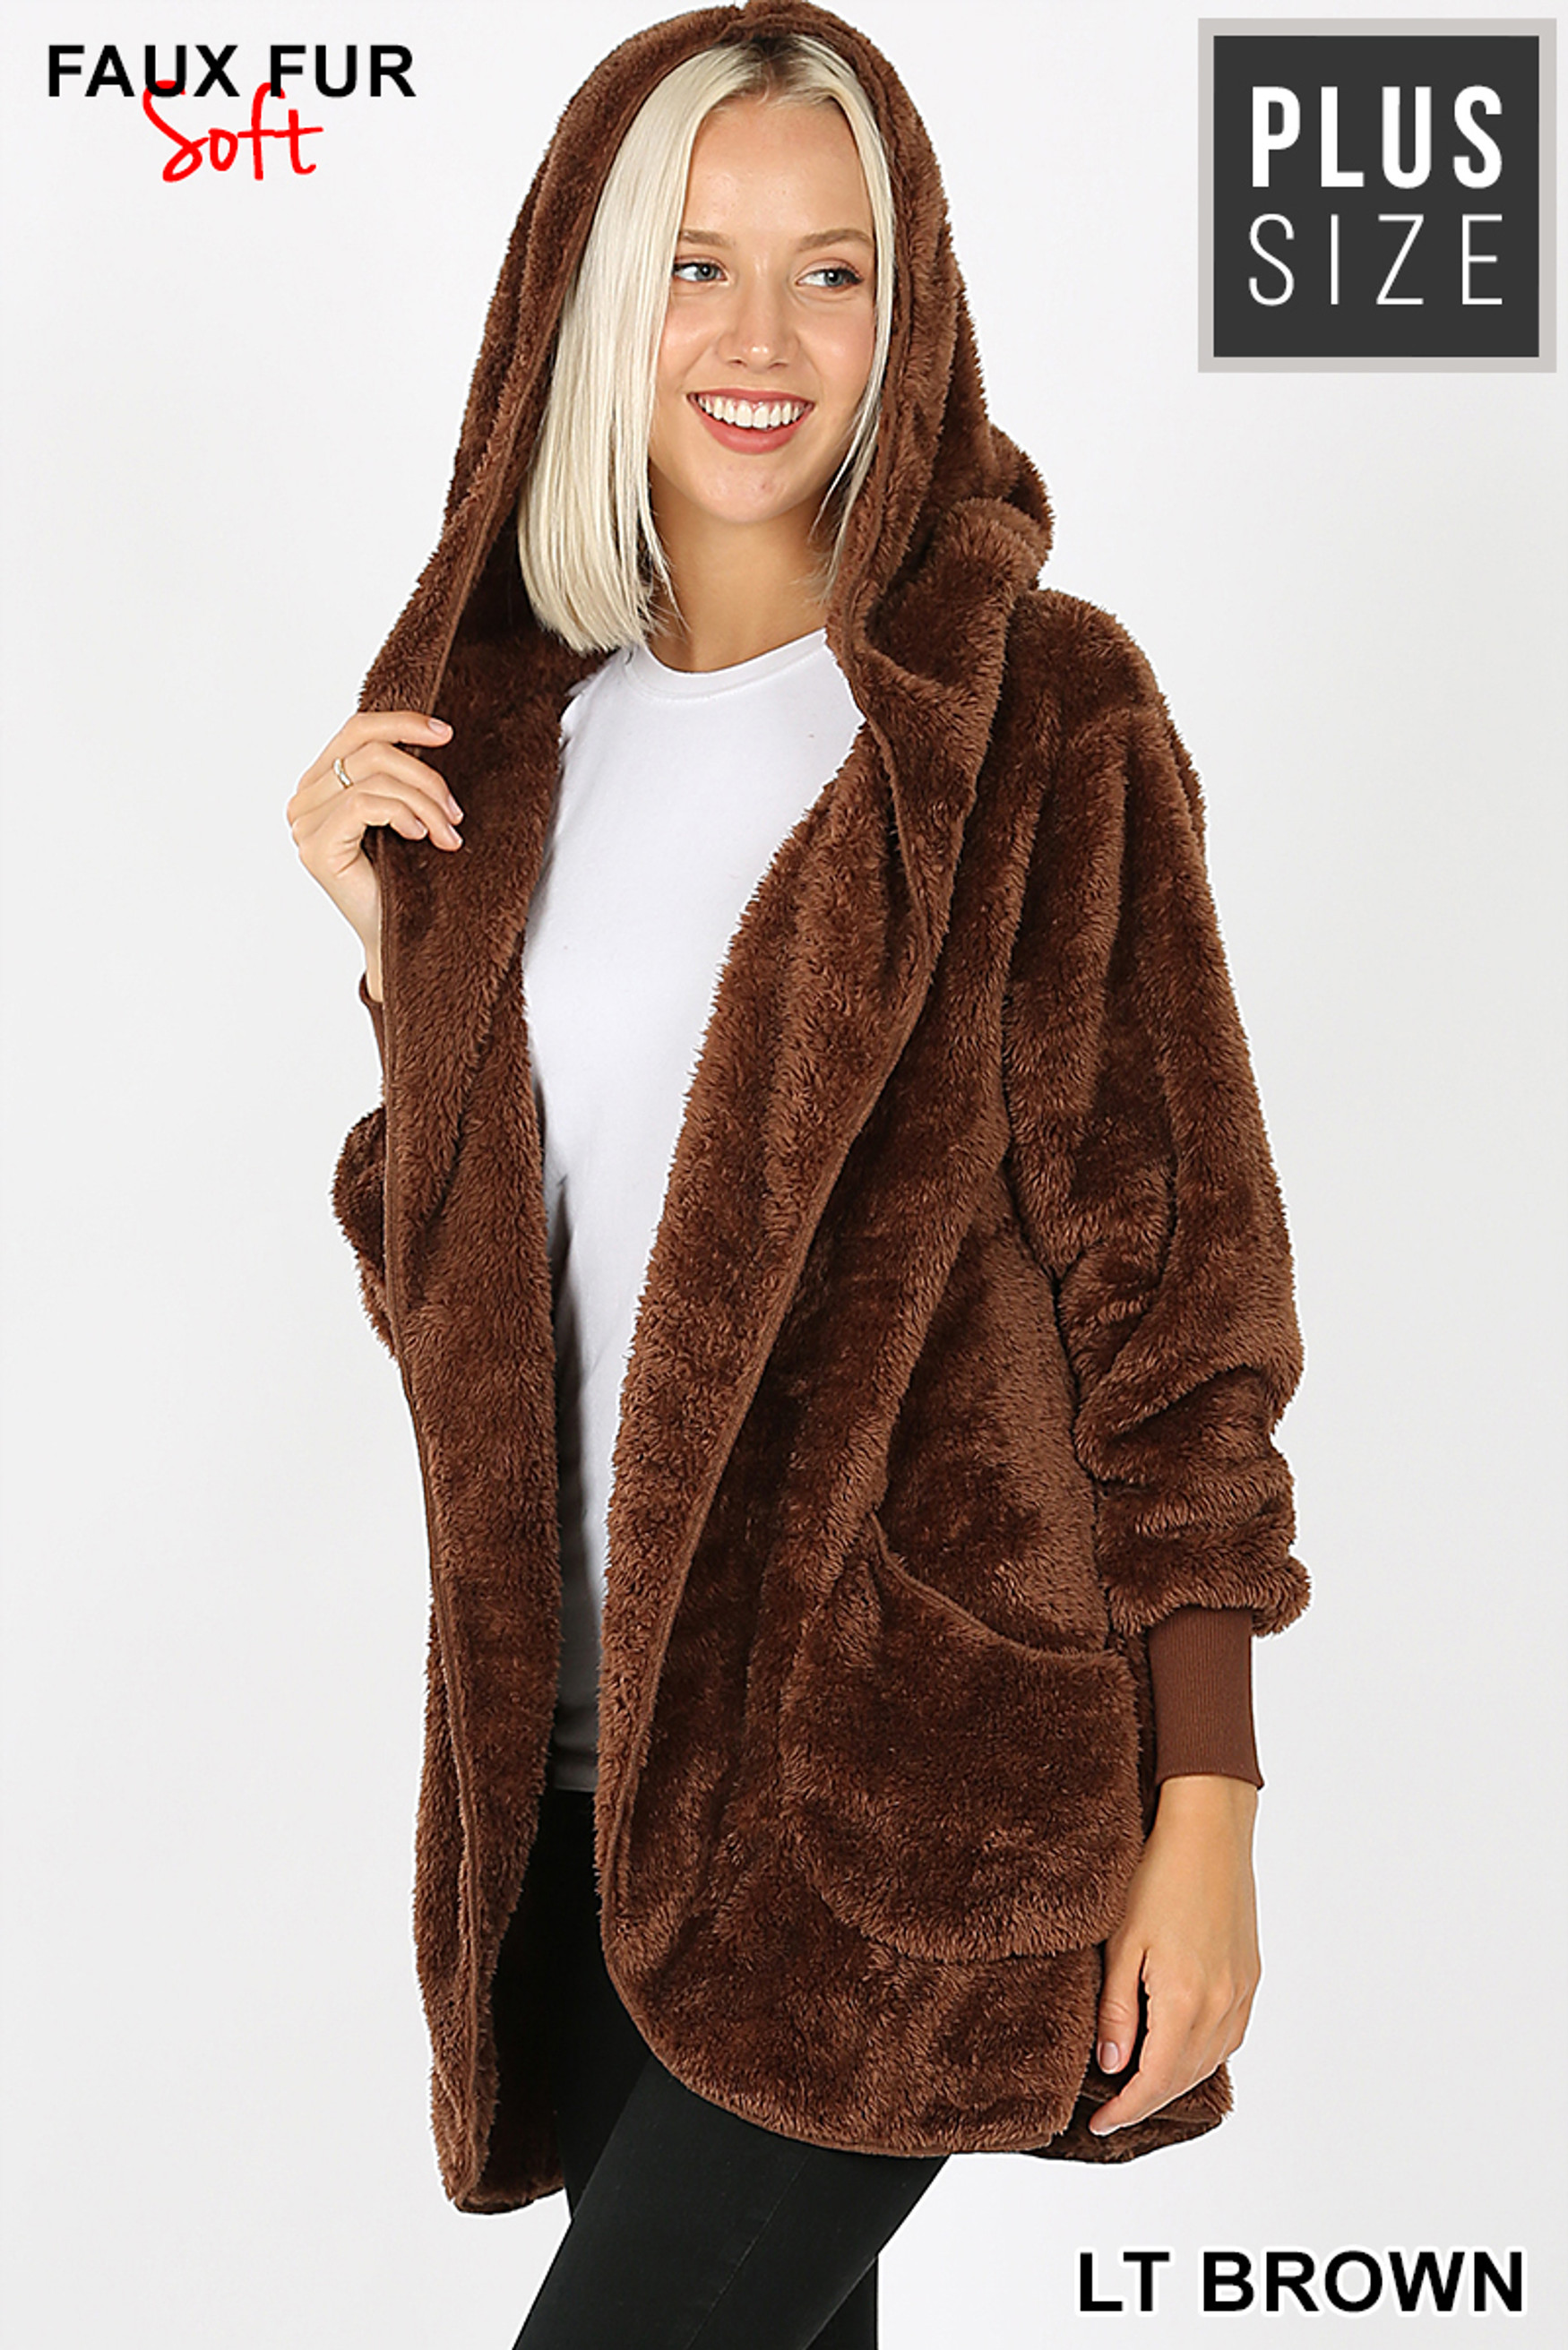 Slightly turned Image of Light Brown Faux Fur Hooded Cocoon Plus Size Jacket with Pockets showing hood up